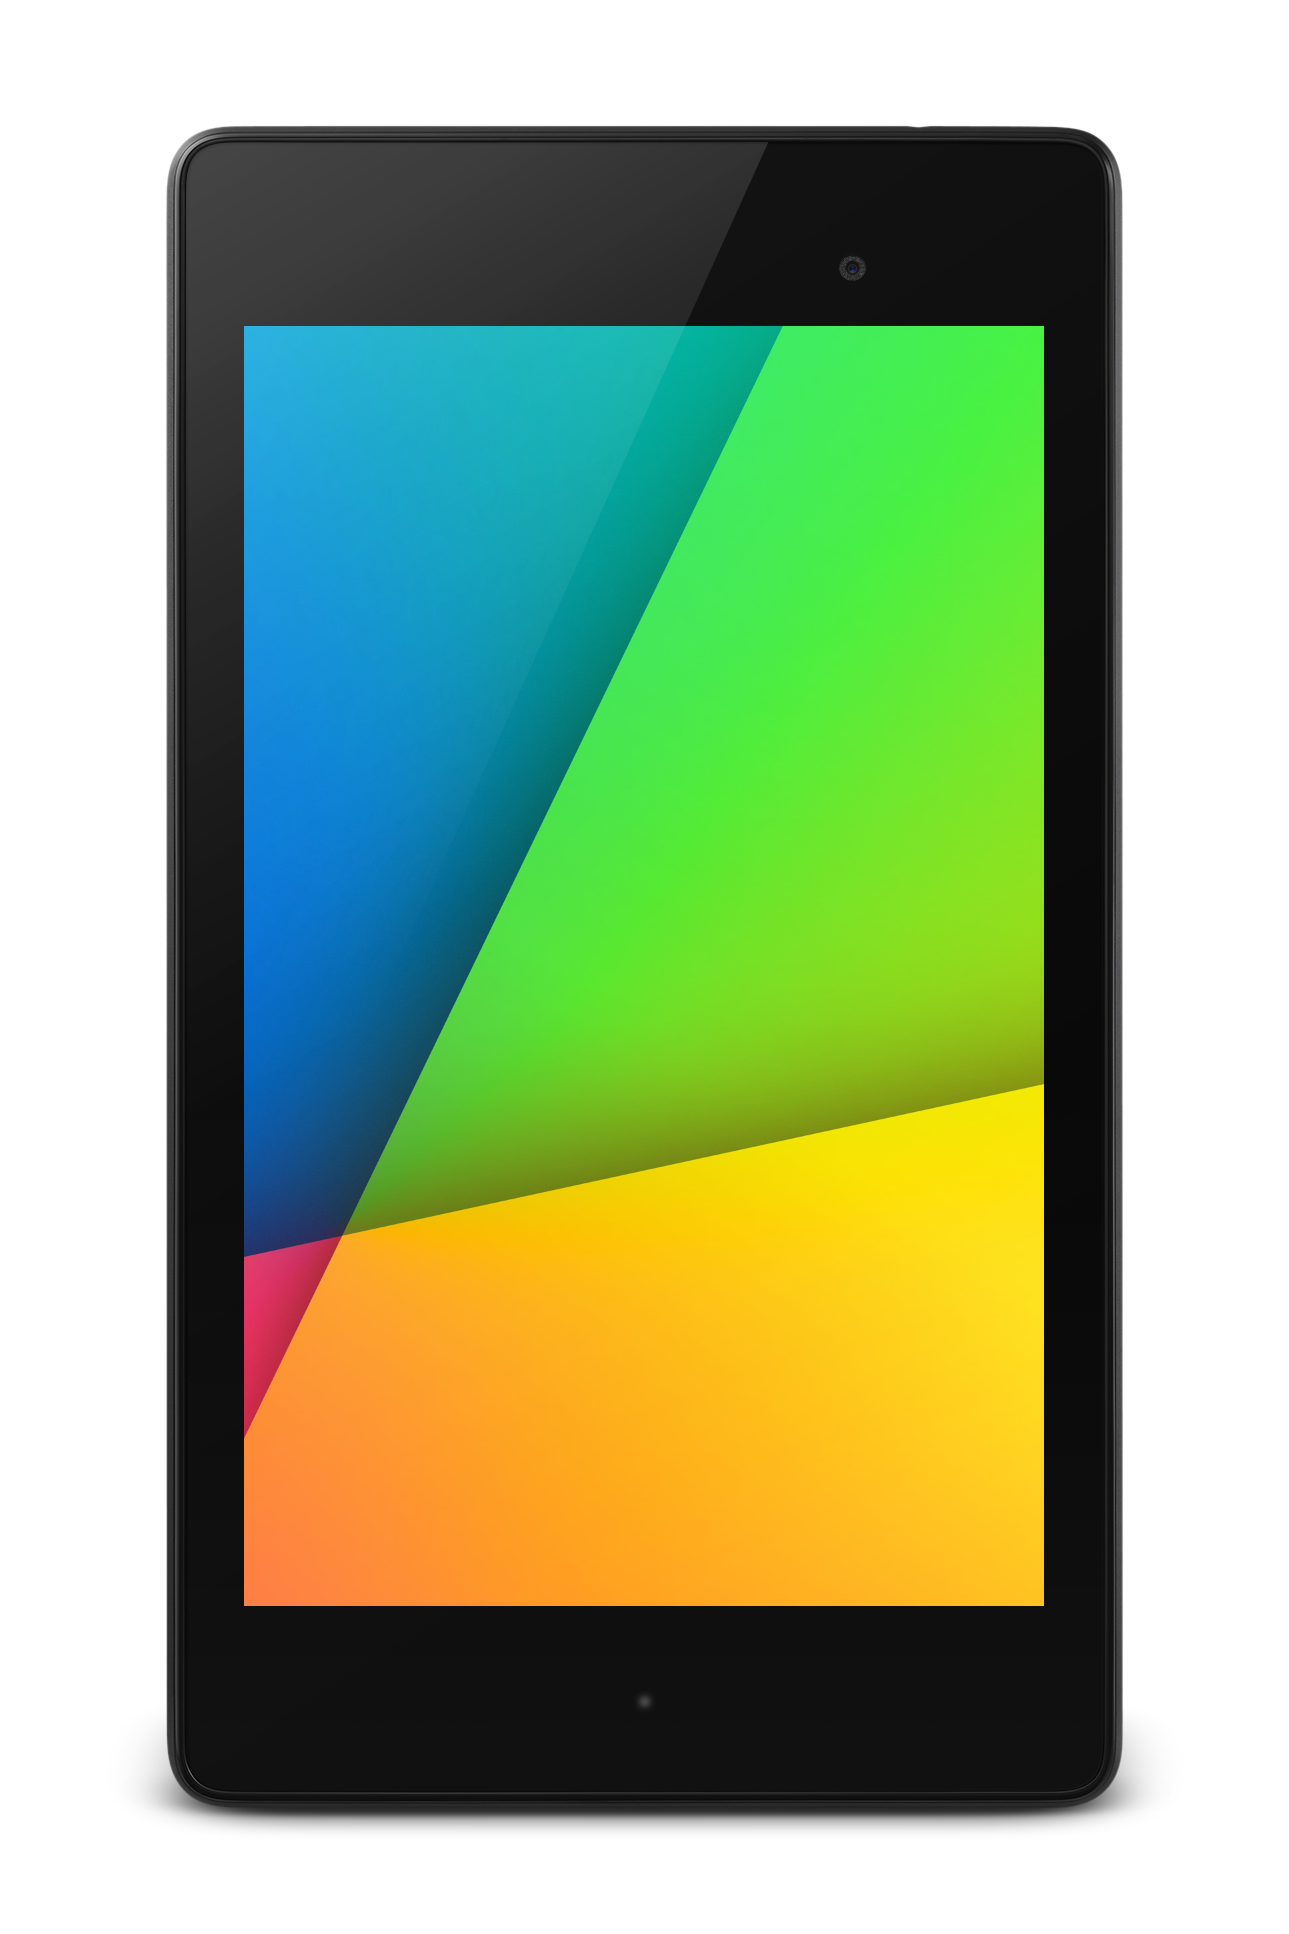 nexus 10 tablet android 8